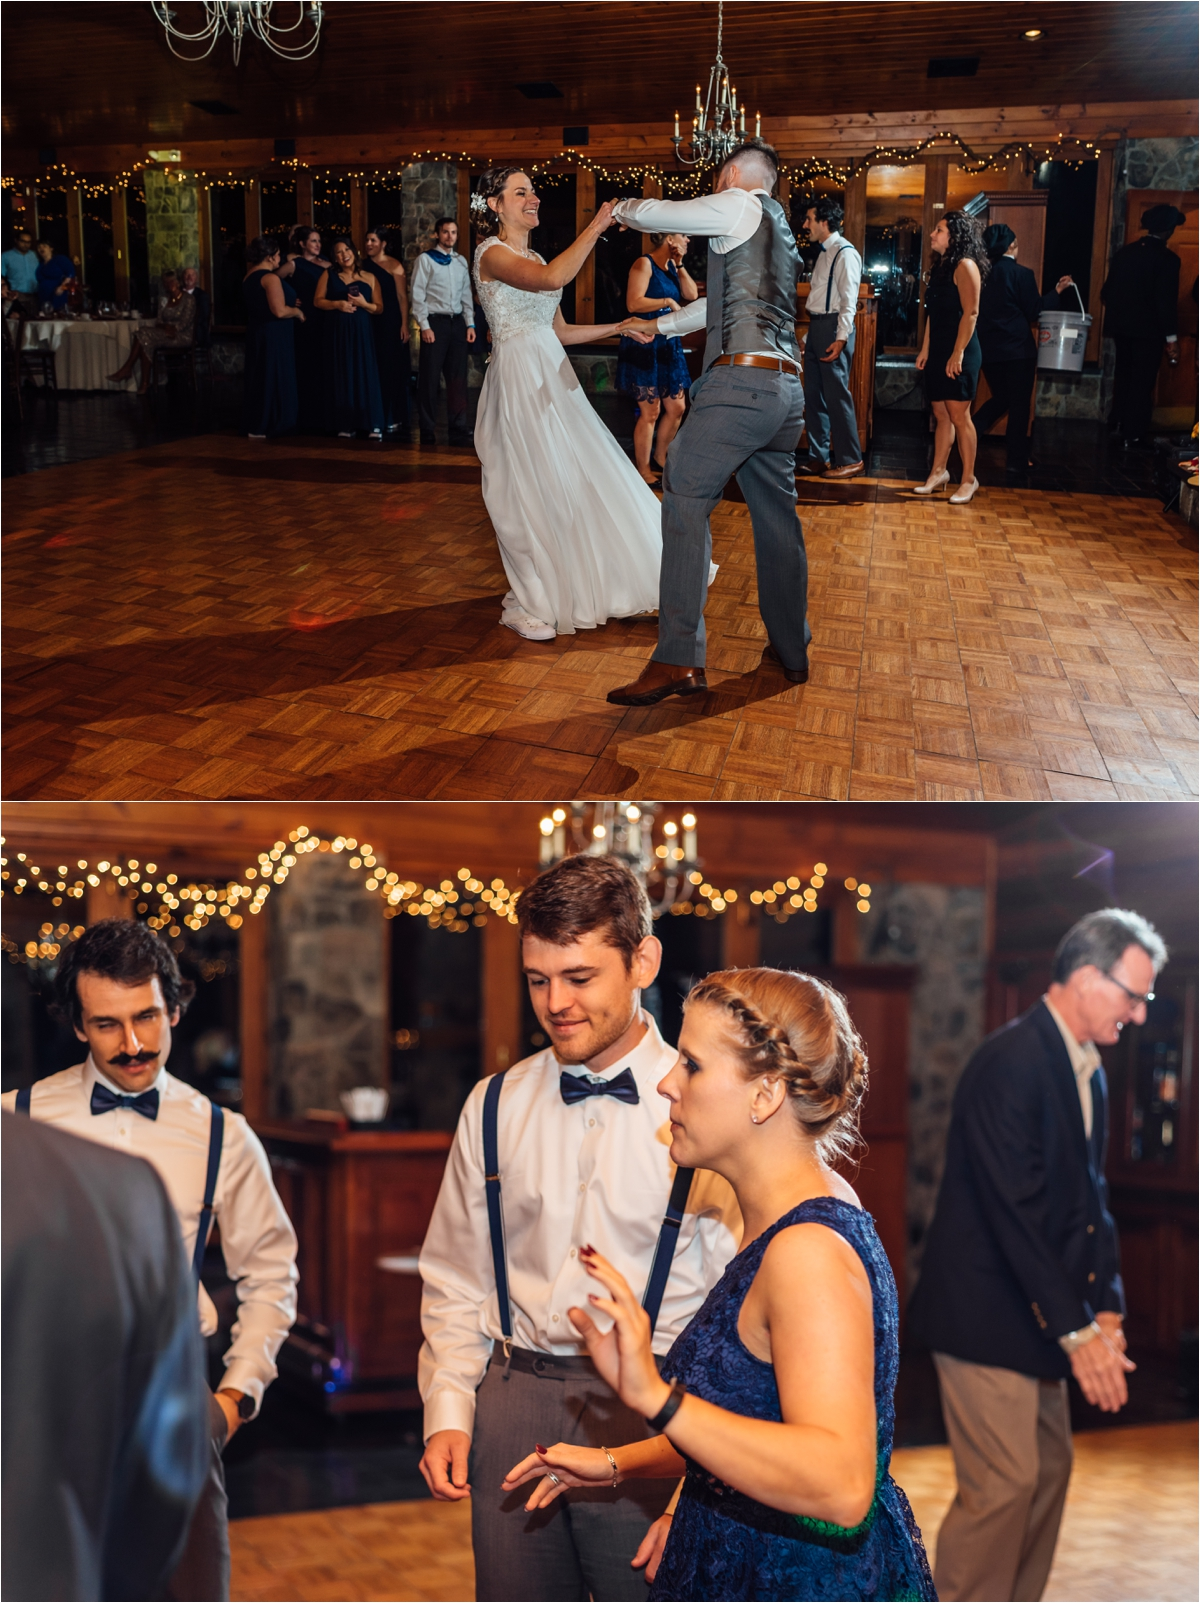 Sarah_&_Doug_Stroudsberg_Wedding_the_photo_farm_0056.jpg